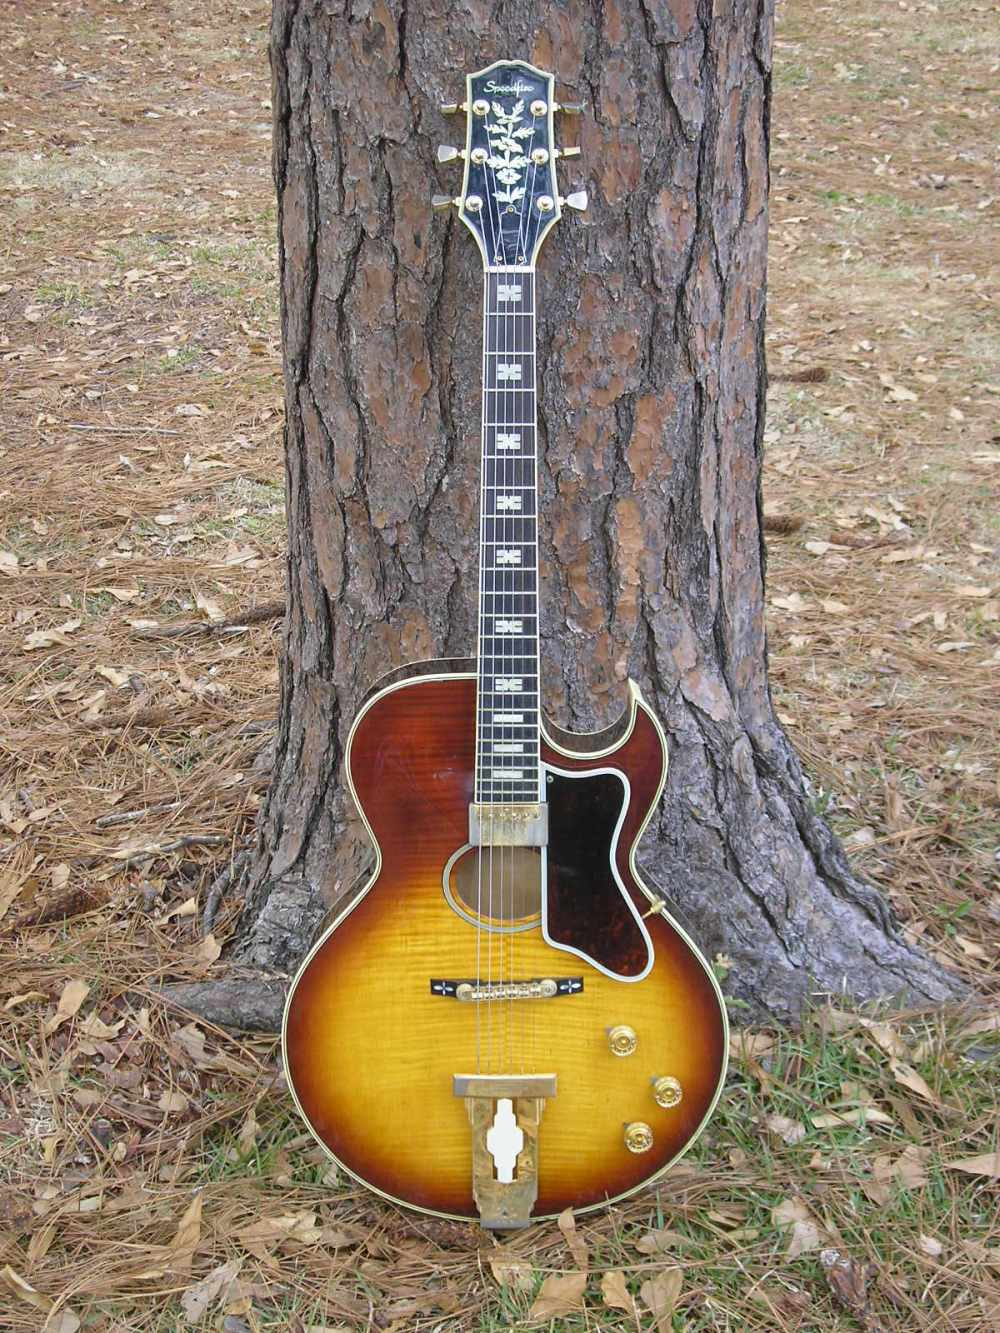 medium resolution of from jon dalton i ve learned that two versions of this guitar were sold in the united kingdom under the ibanez and antoria